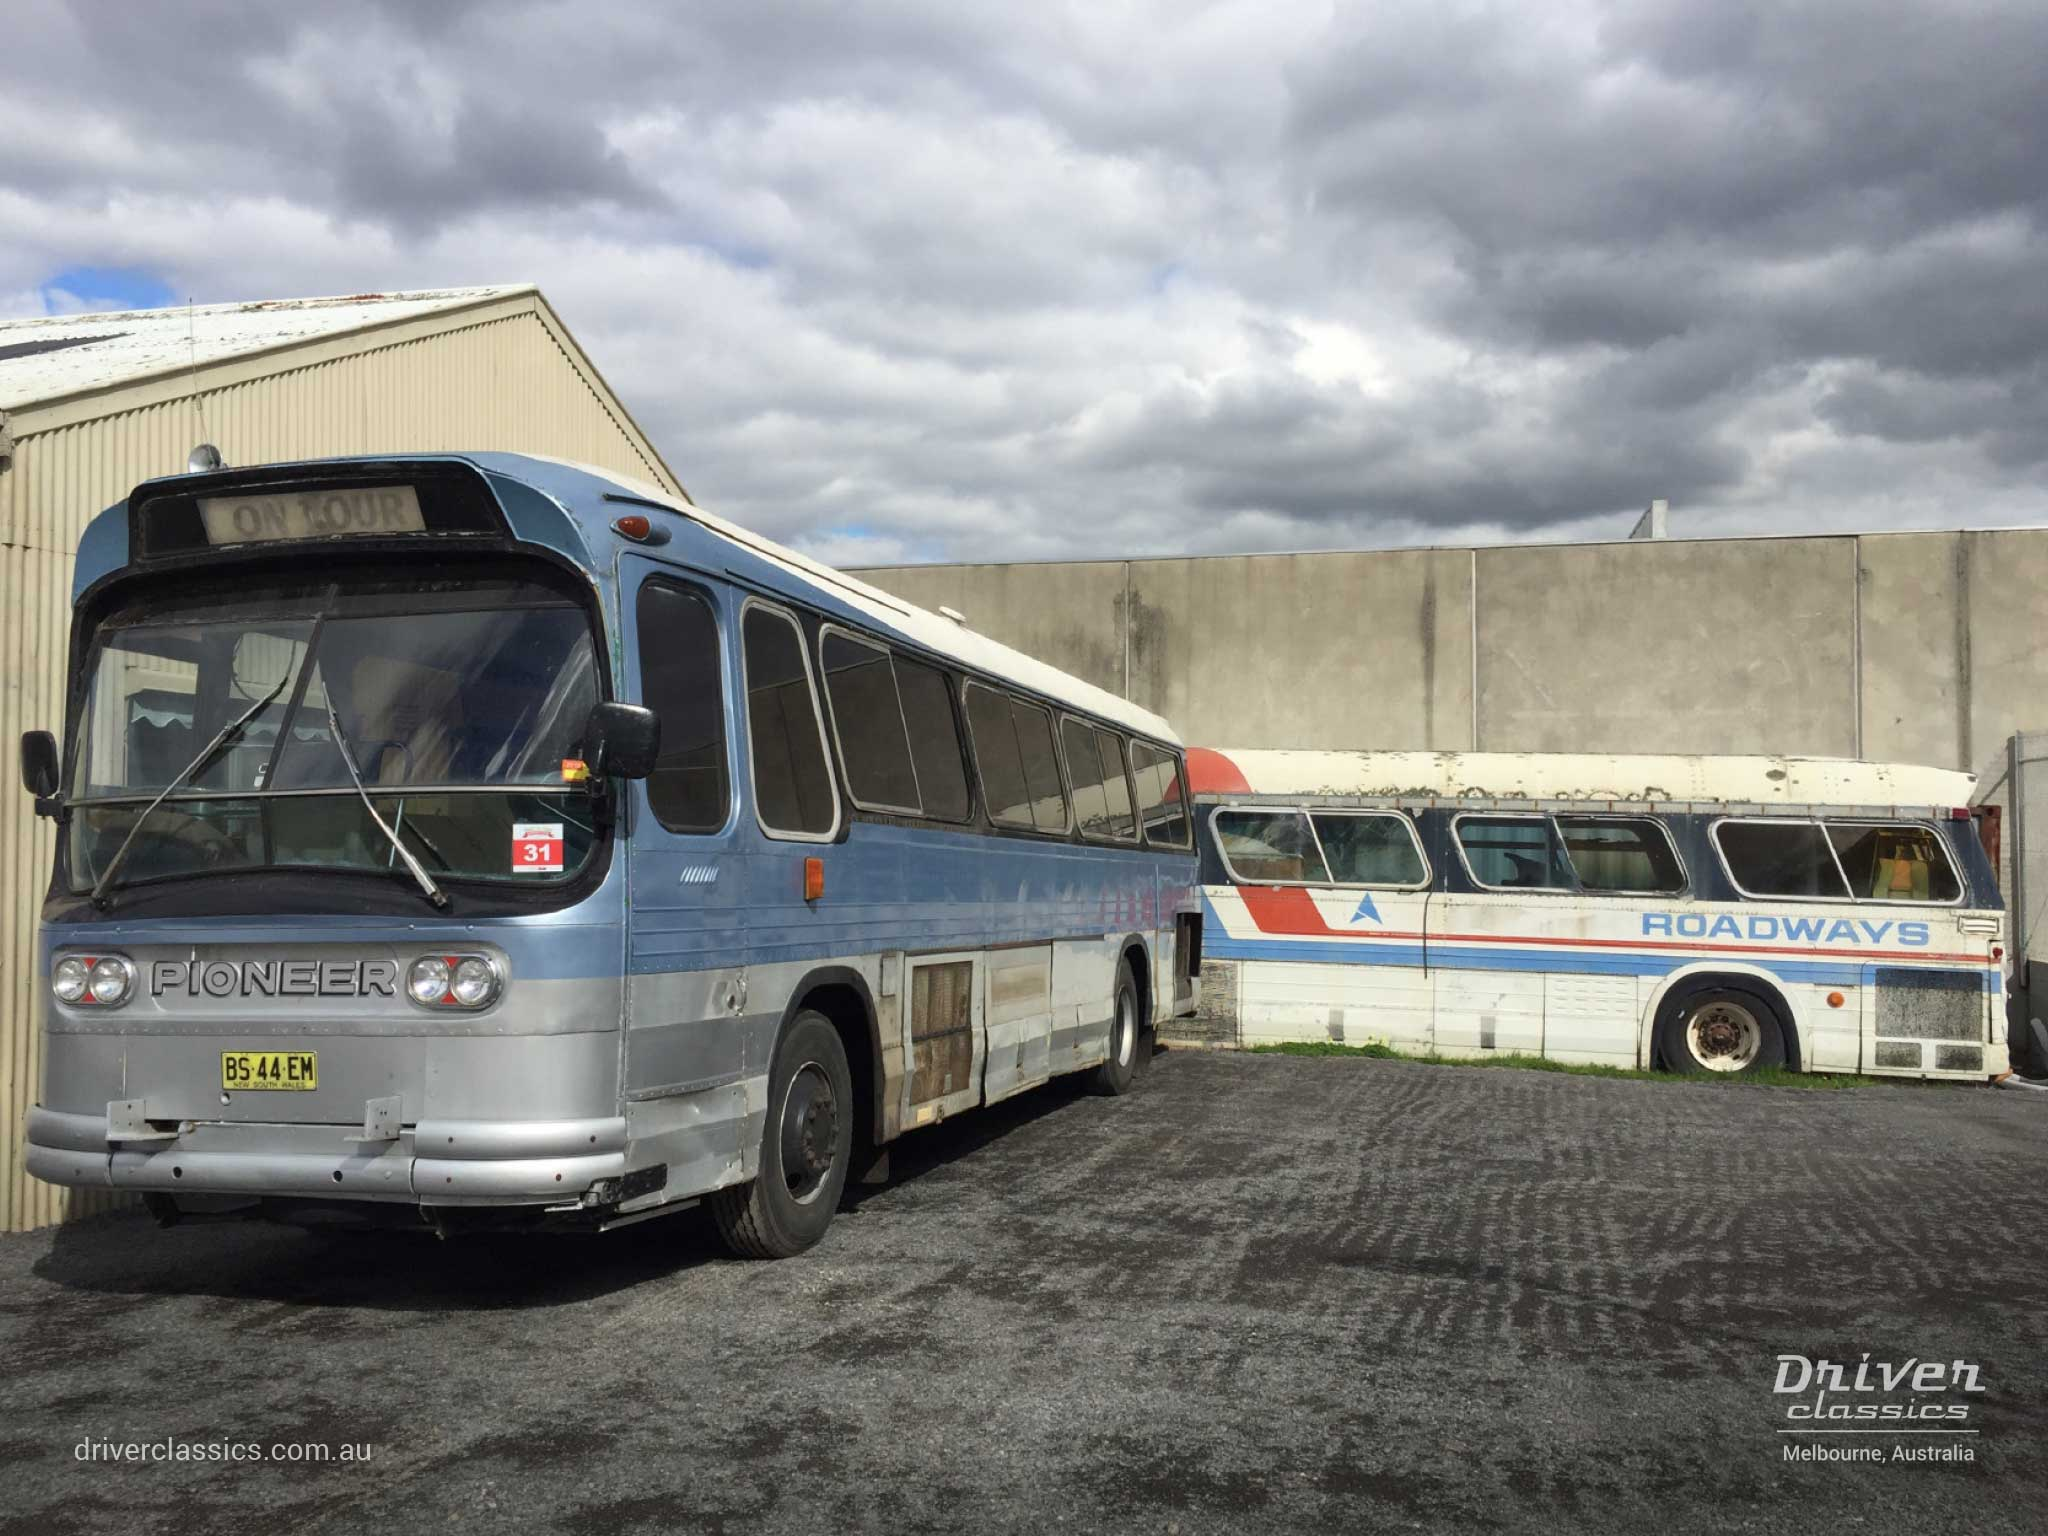 Ansair Scenicruiser bus, GMC 1967 version, with GM PD4106 bus in background, Mt Waverley, August 2018